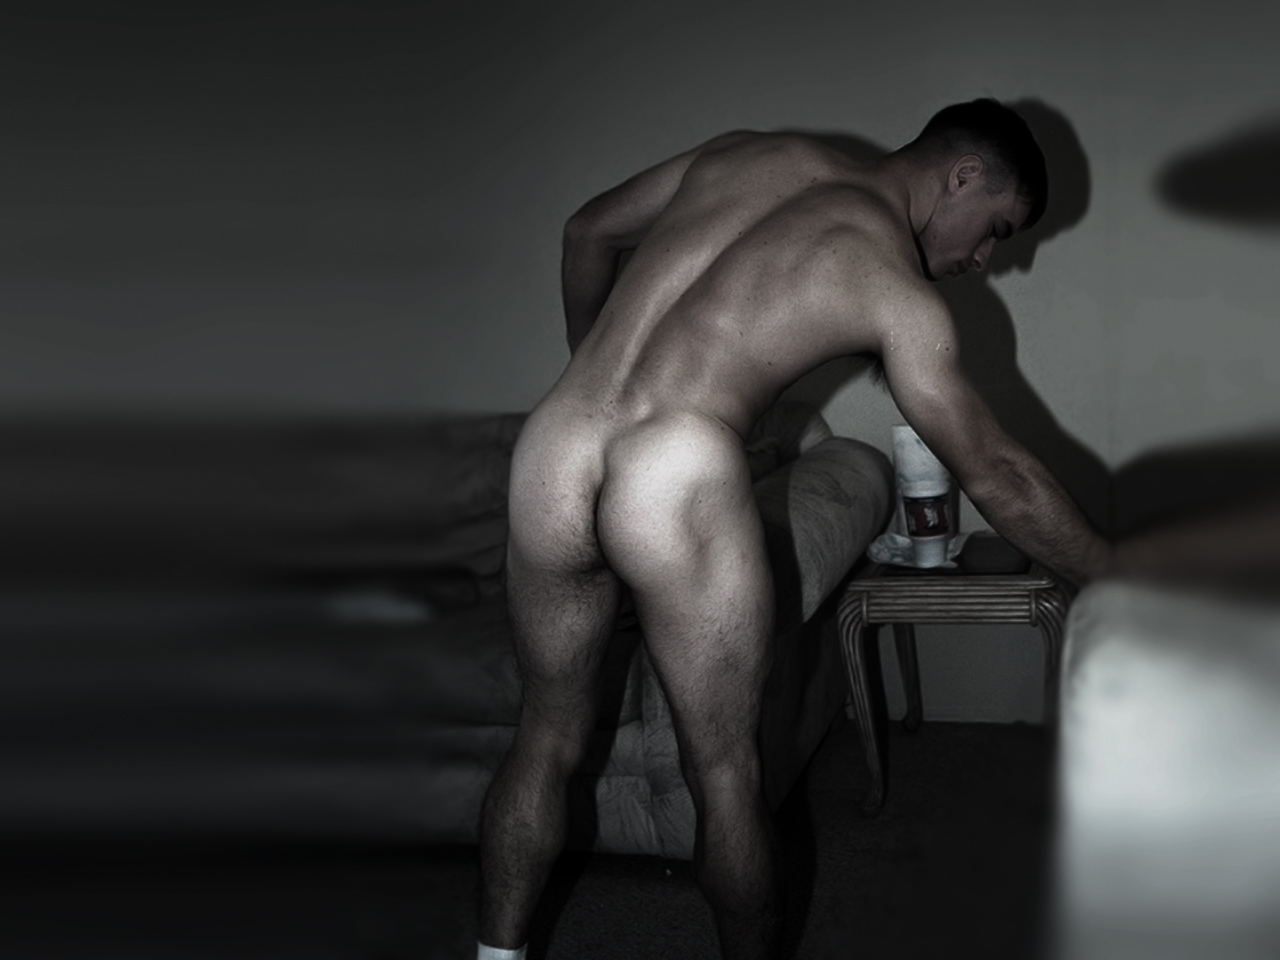 from Timothy gay man glory hole pic